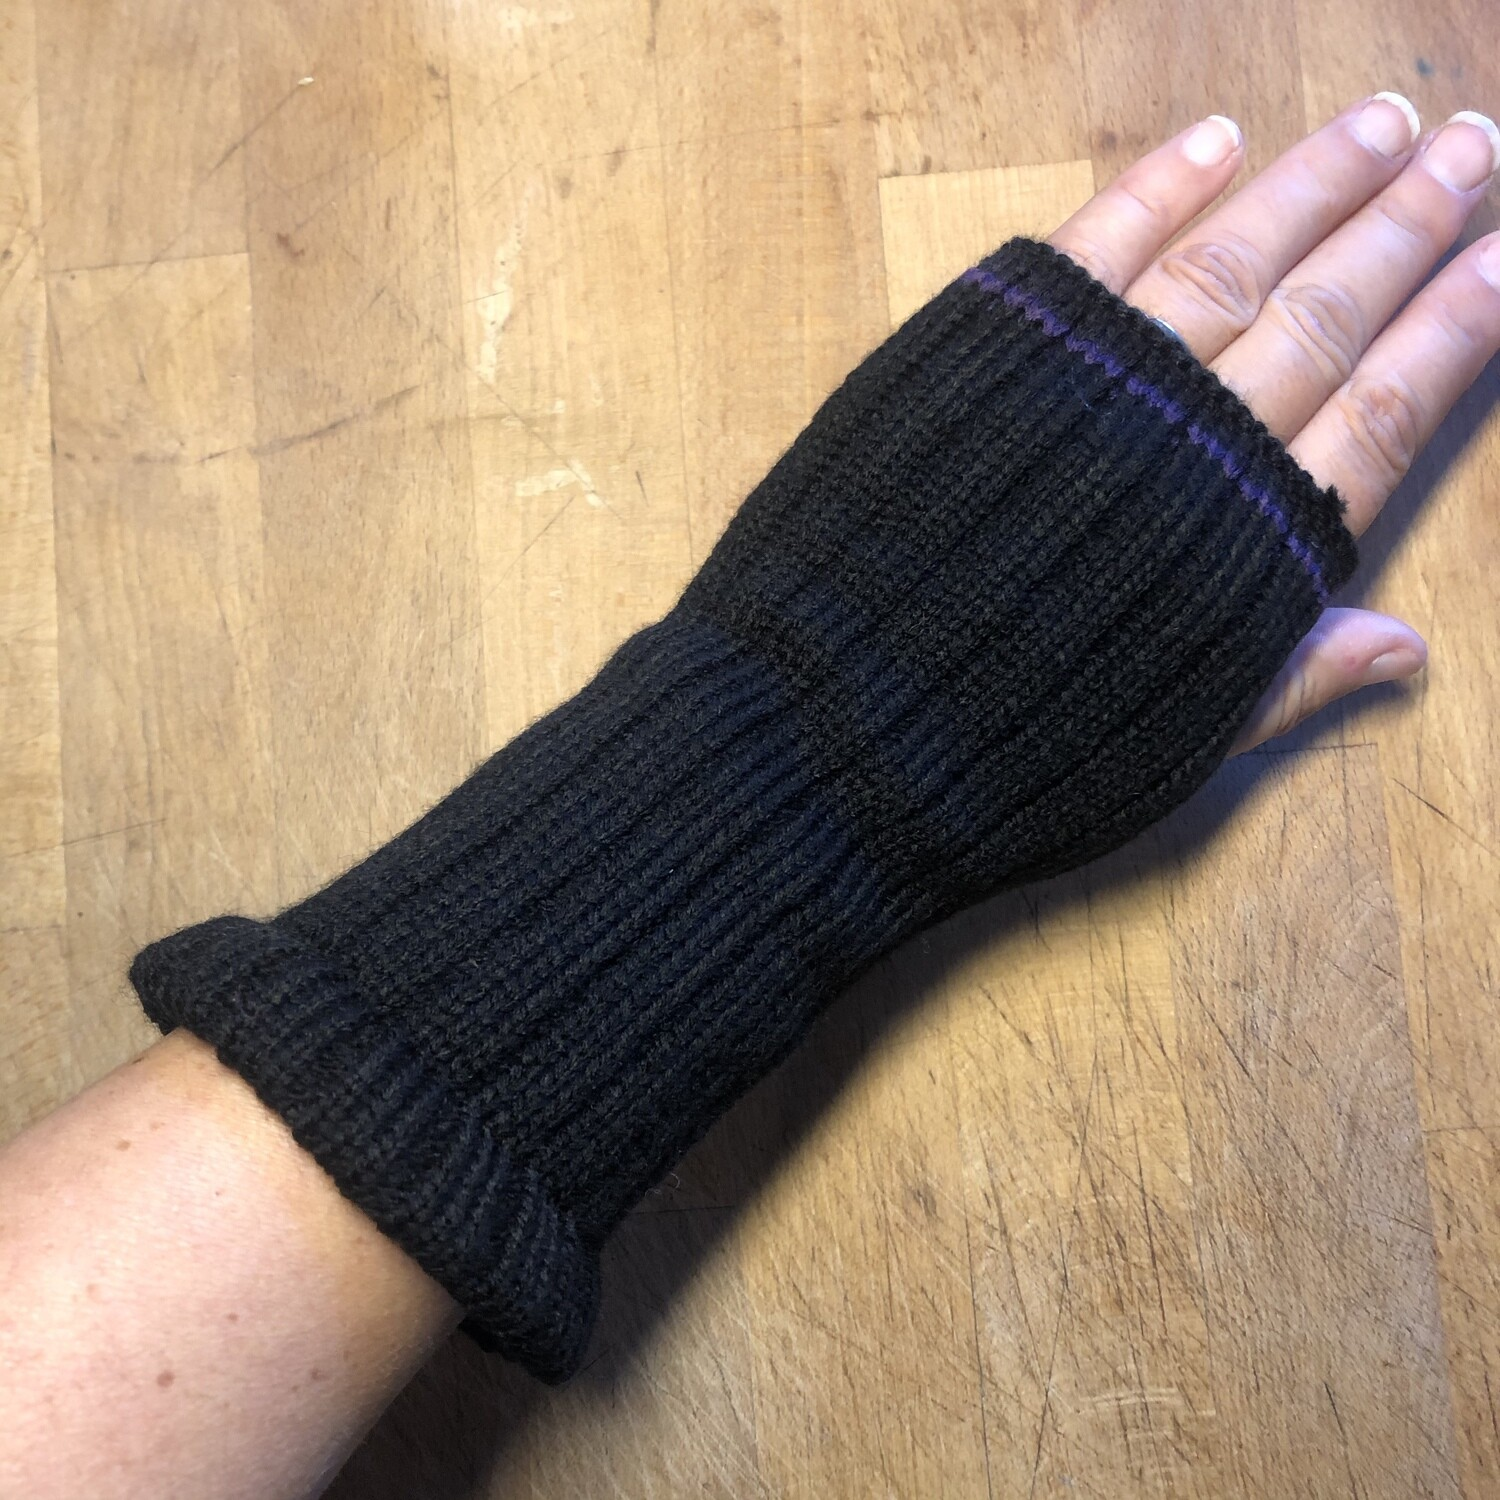 Fingerless Mitts - Solid Black with Purple Stripe - medium length - Go Vikings!